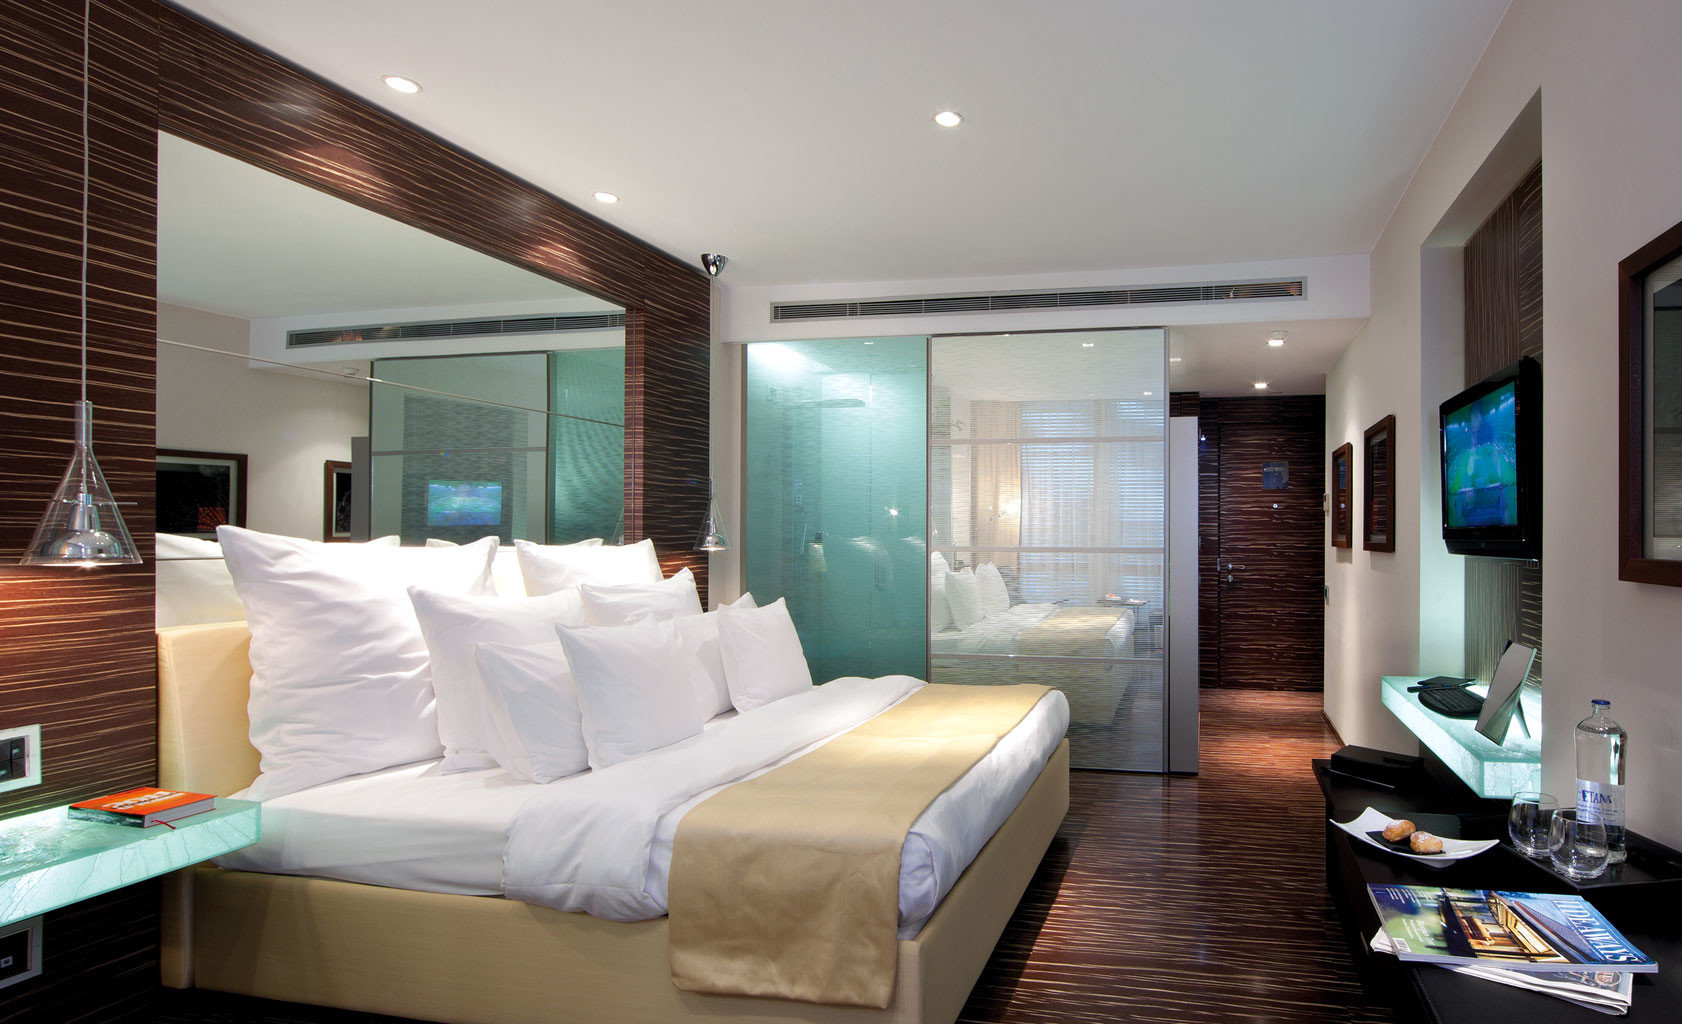 Adult-only Bedroom Boutique Modern Waterfront sofa property condominium living room Suite home Villa cottage mansion flat